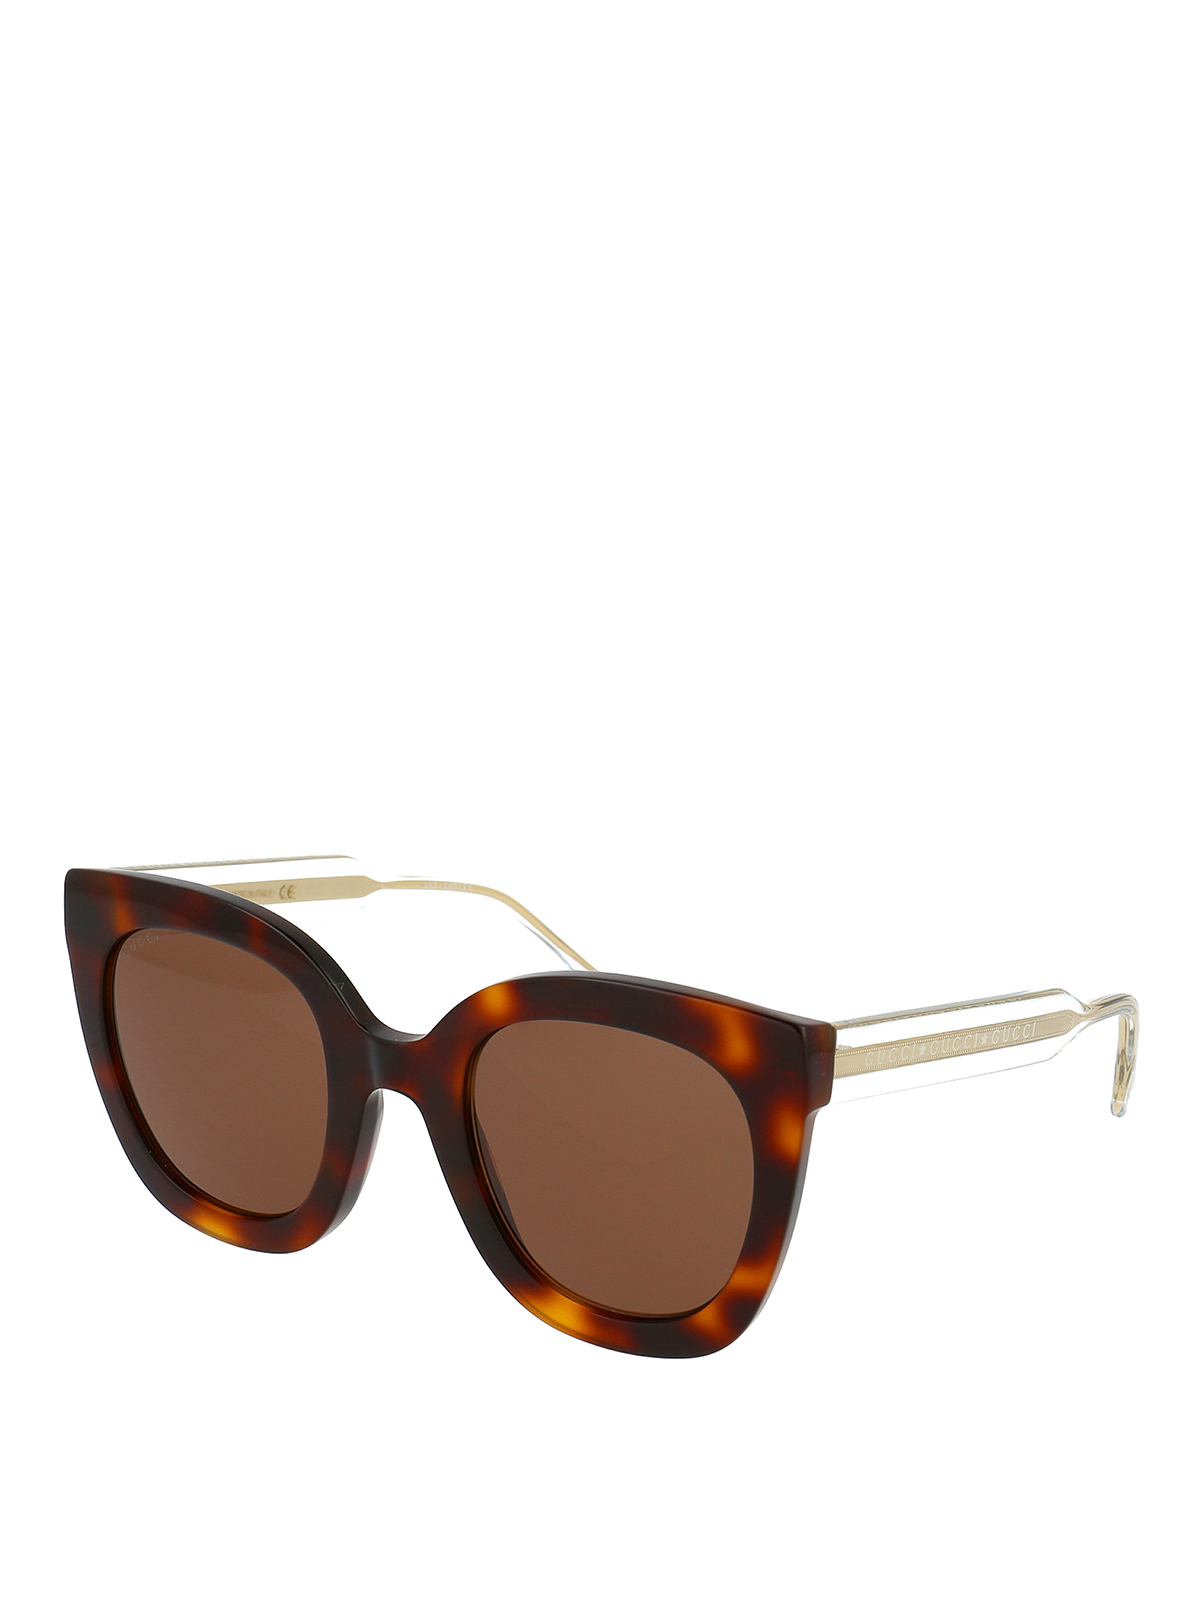 Gucci Tortoiseshell Cat-Eye Sunglasses In Brown